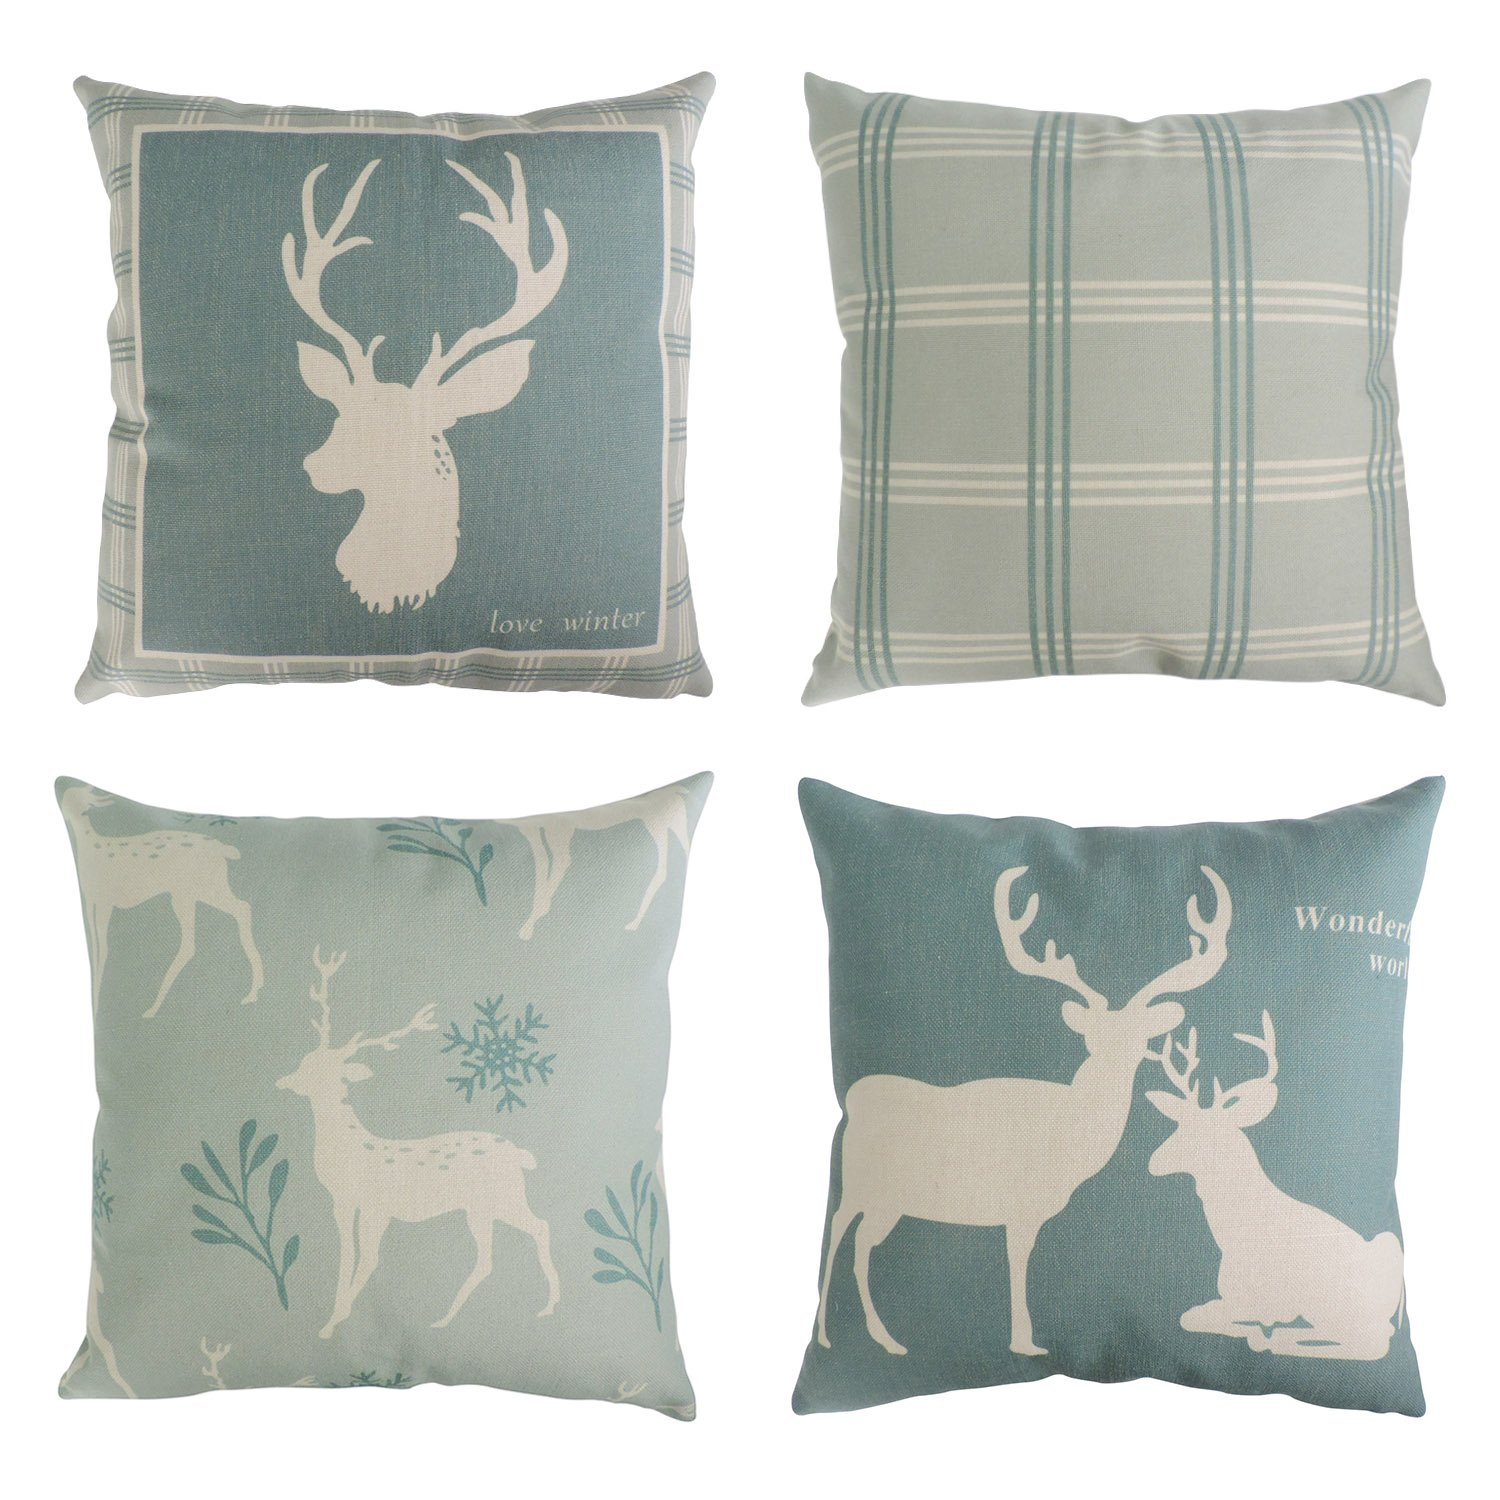 BLEUM CADE Set of 4 Decorative Throw Pillow Covers Cushion Couch Pillow Cover 100% Cotton Linen Deer Pattern for Home Office Car Sofa